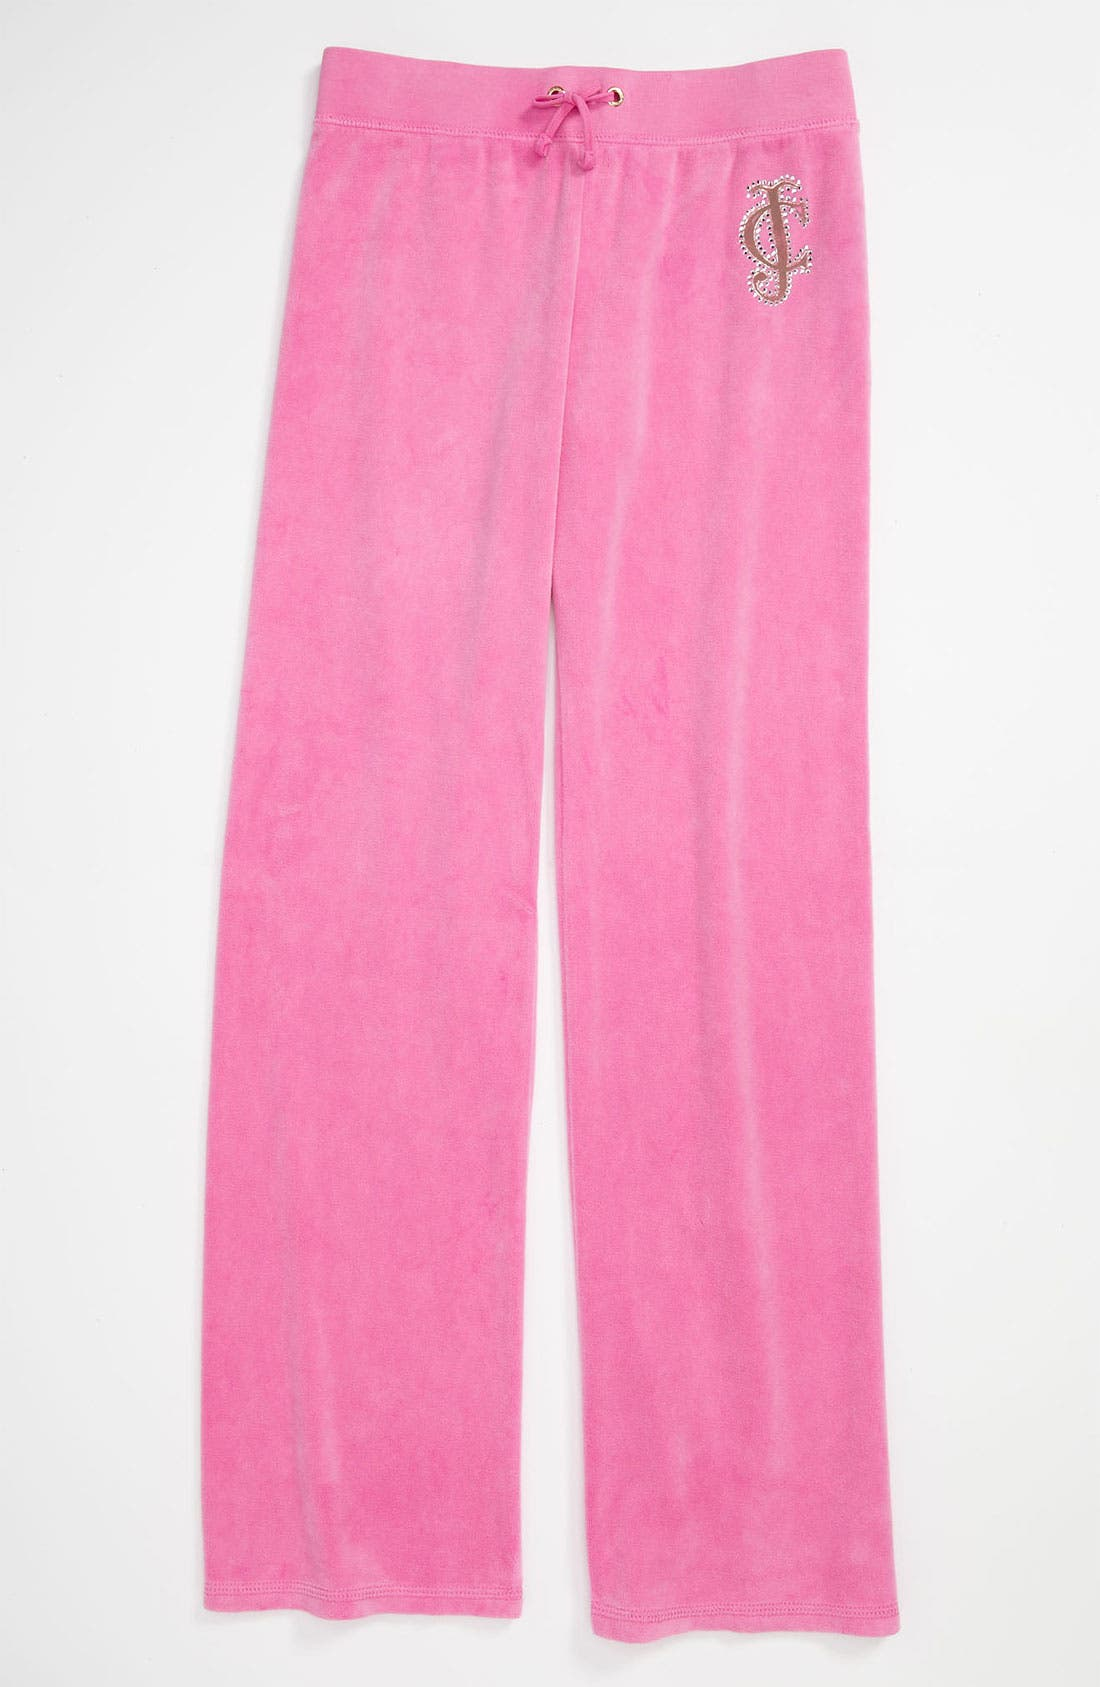 Main Image - Juicy Couture Velour Pants (Little Girls & Big Girls)